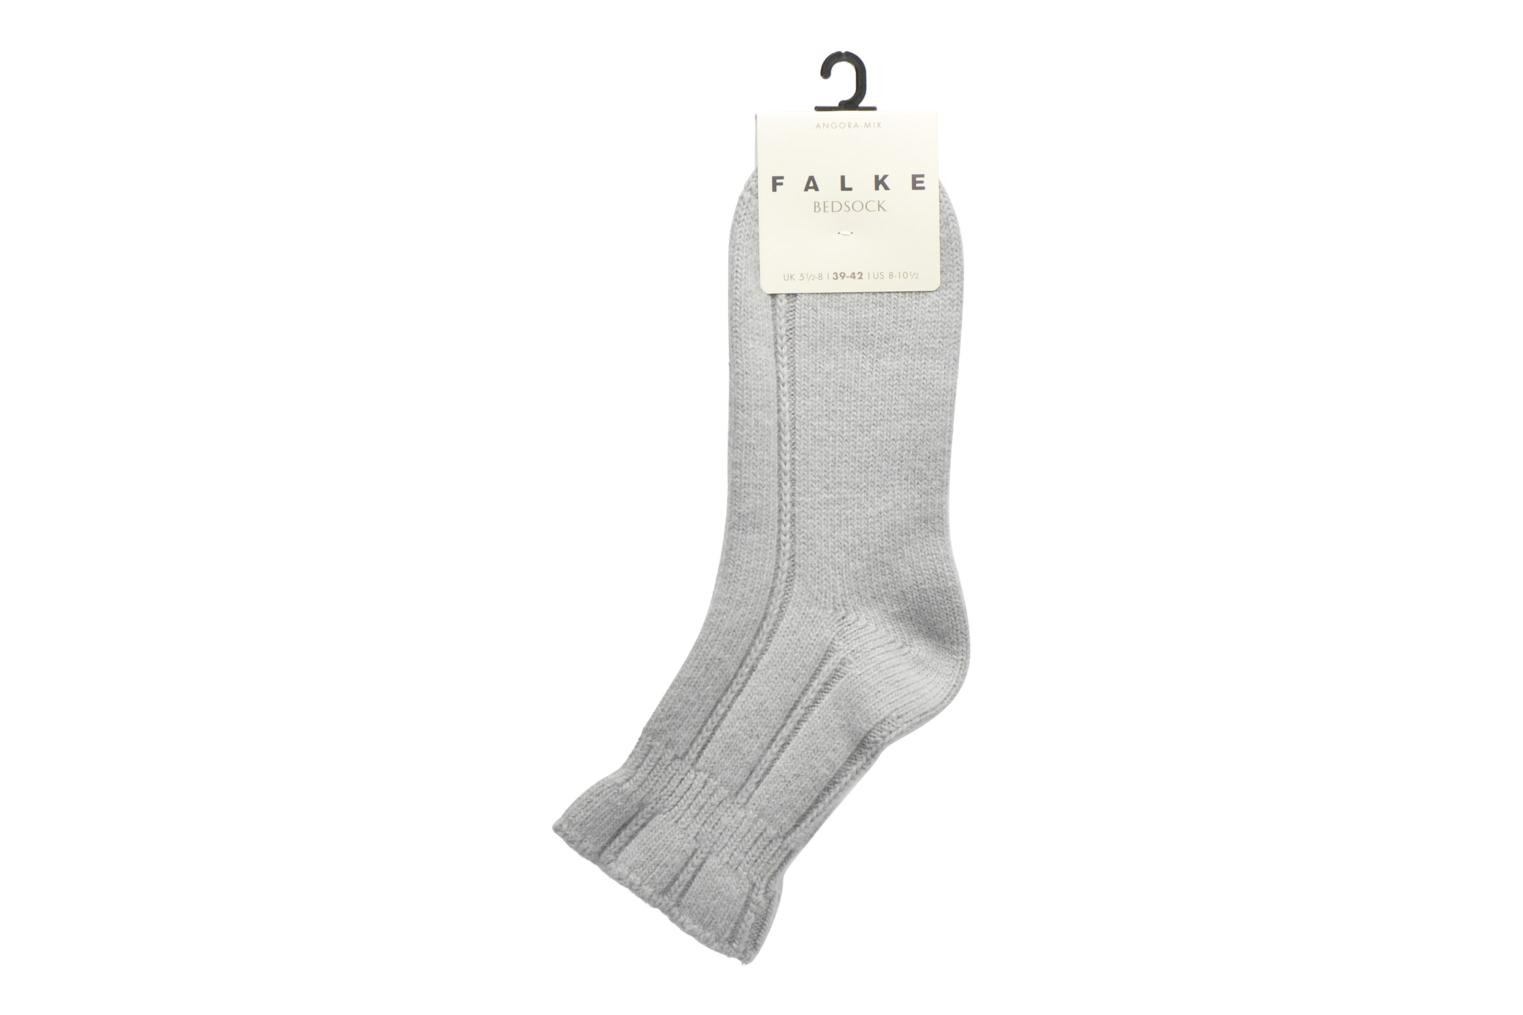 Chaussettes Bedsock 3290